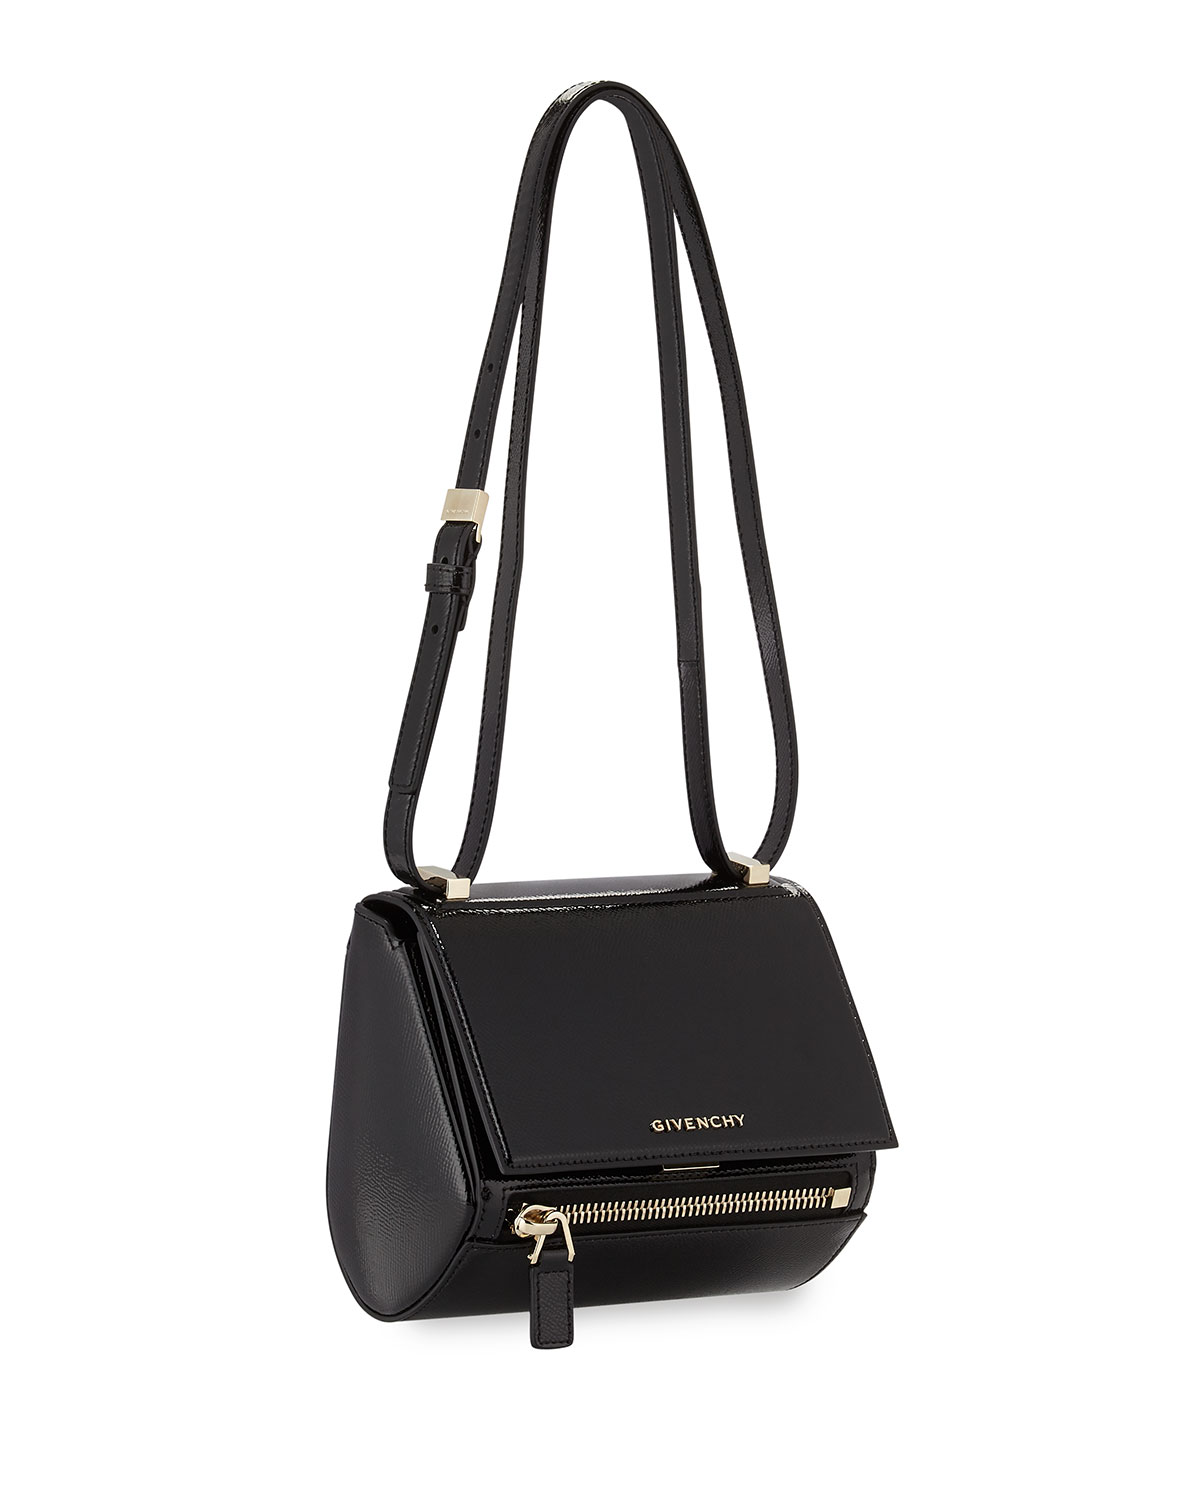 2d94cf3ff8 Givenchy Mini Pandora Box Patent Shoulder Bag